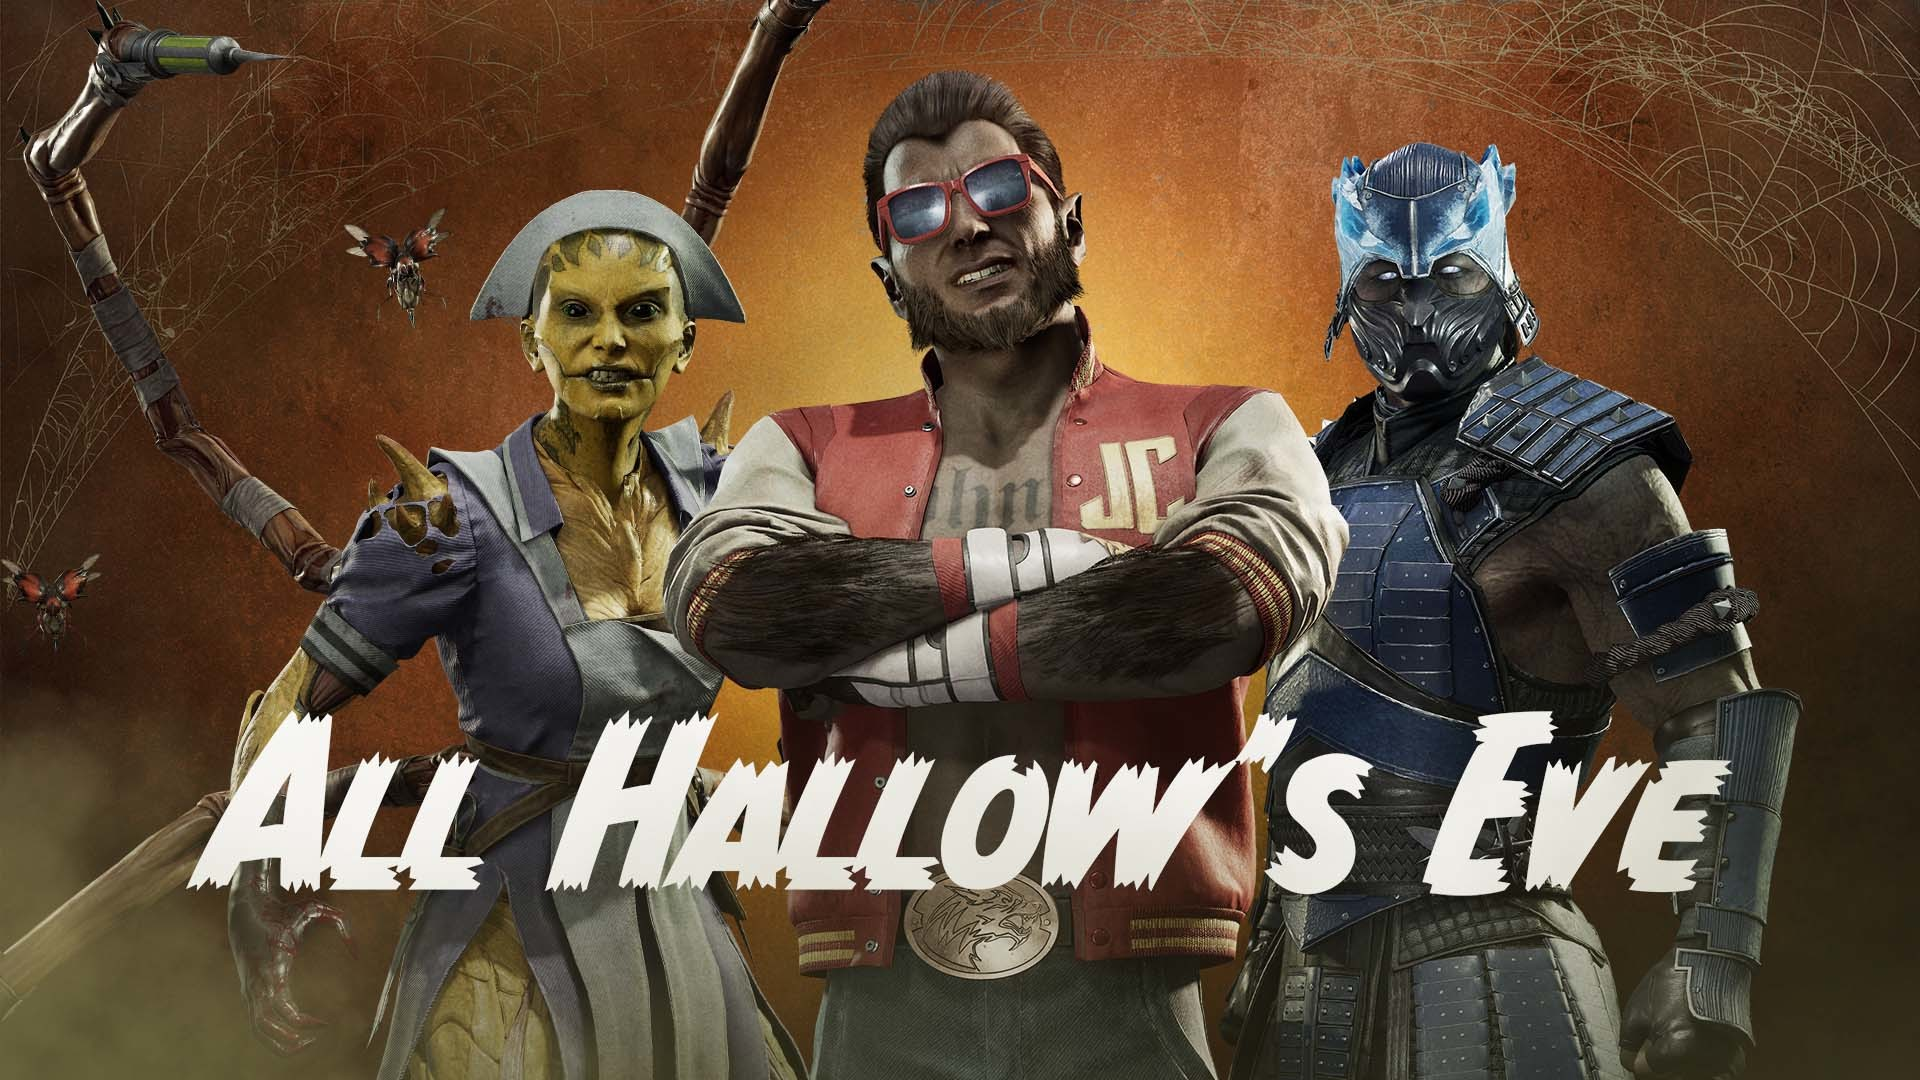 New All Hallows' Eve Character Skin Pack Available Now As Part Of Mortal Kombat 11: Aftermath Expansion